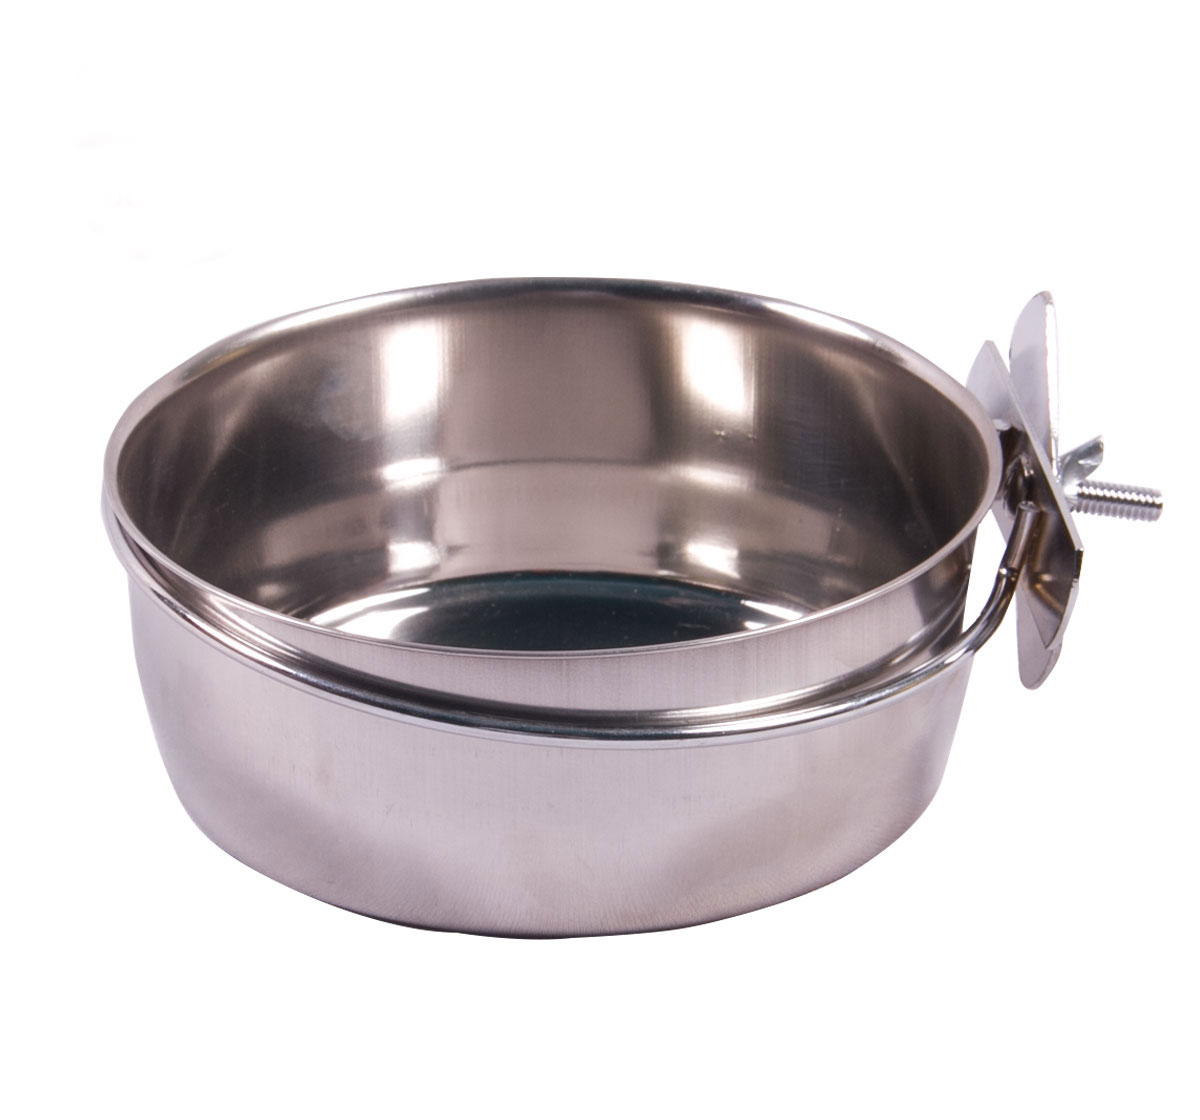 DogSpot Clamp Bowl - Medium